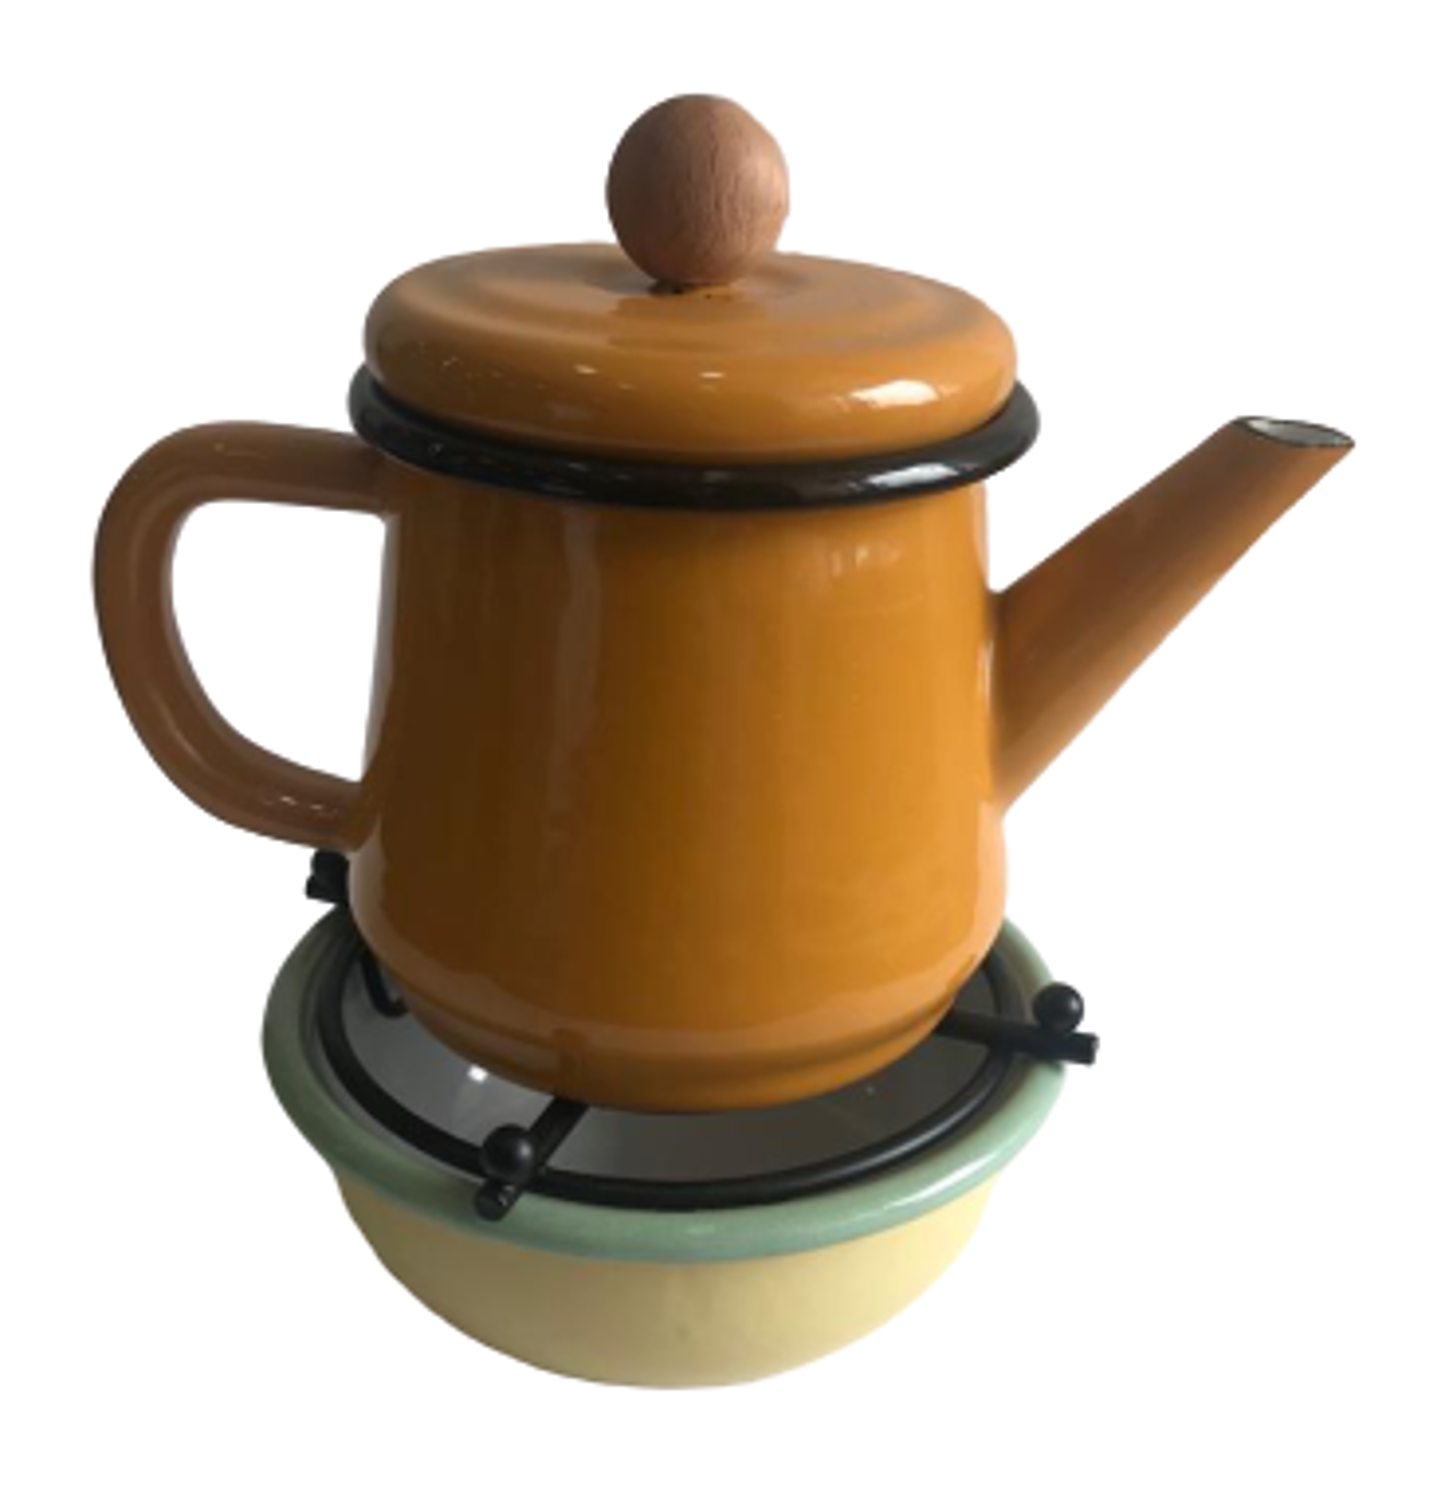 MEVLANA ENAMEL TEA POT WITH OTTOMAN STOVE - KHAKI resmi